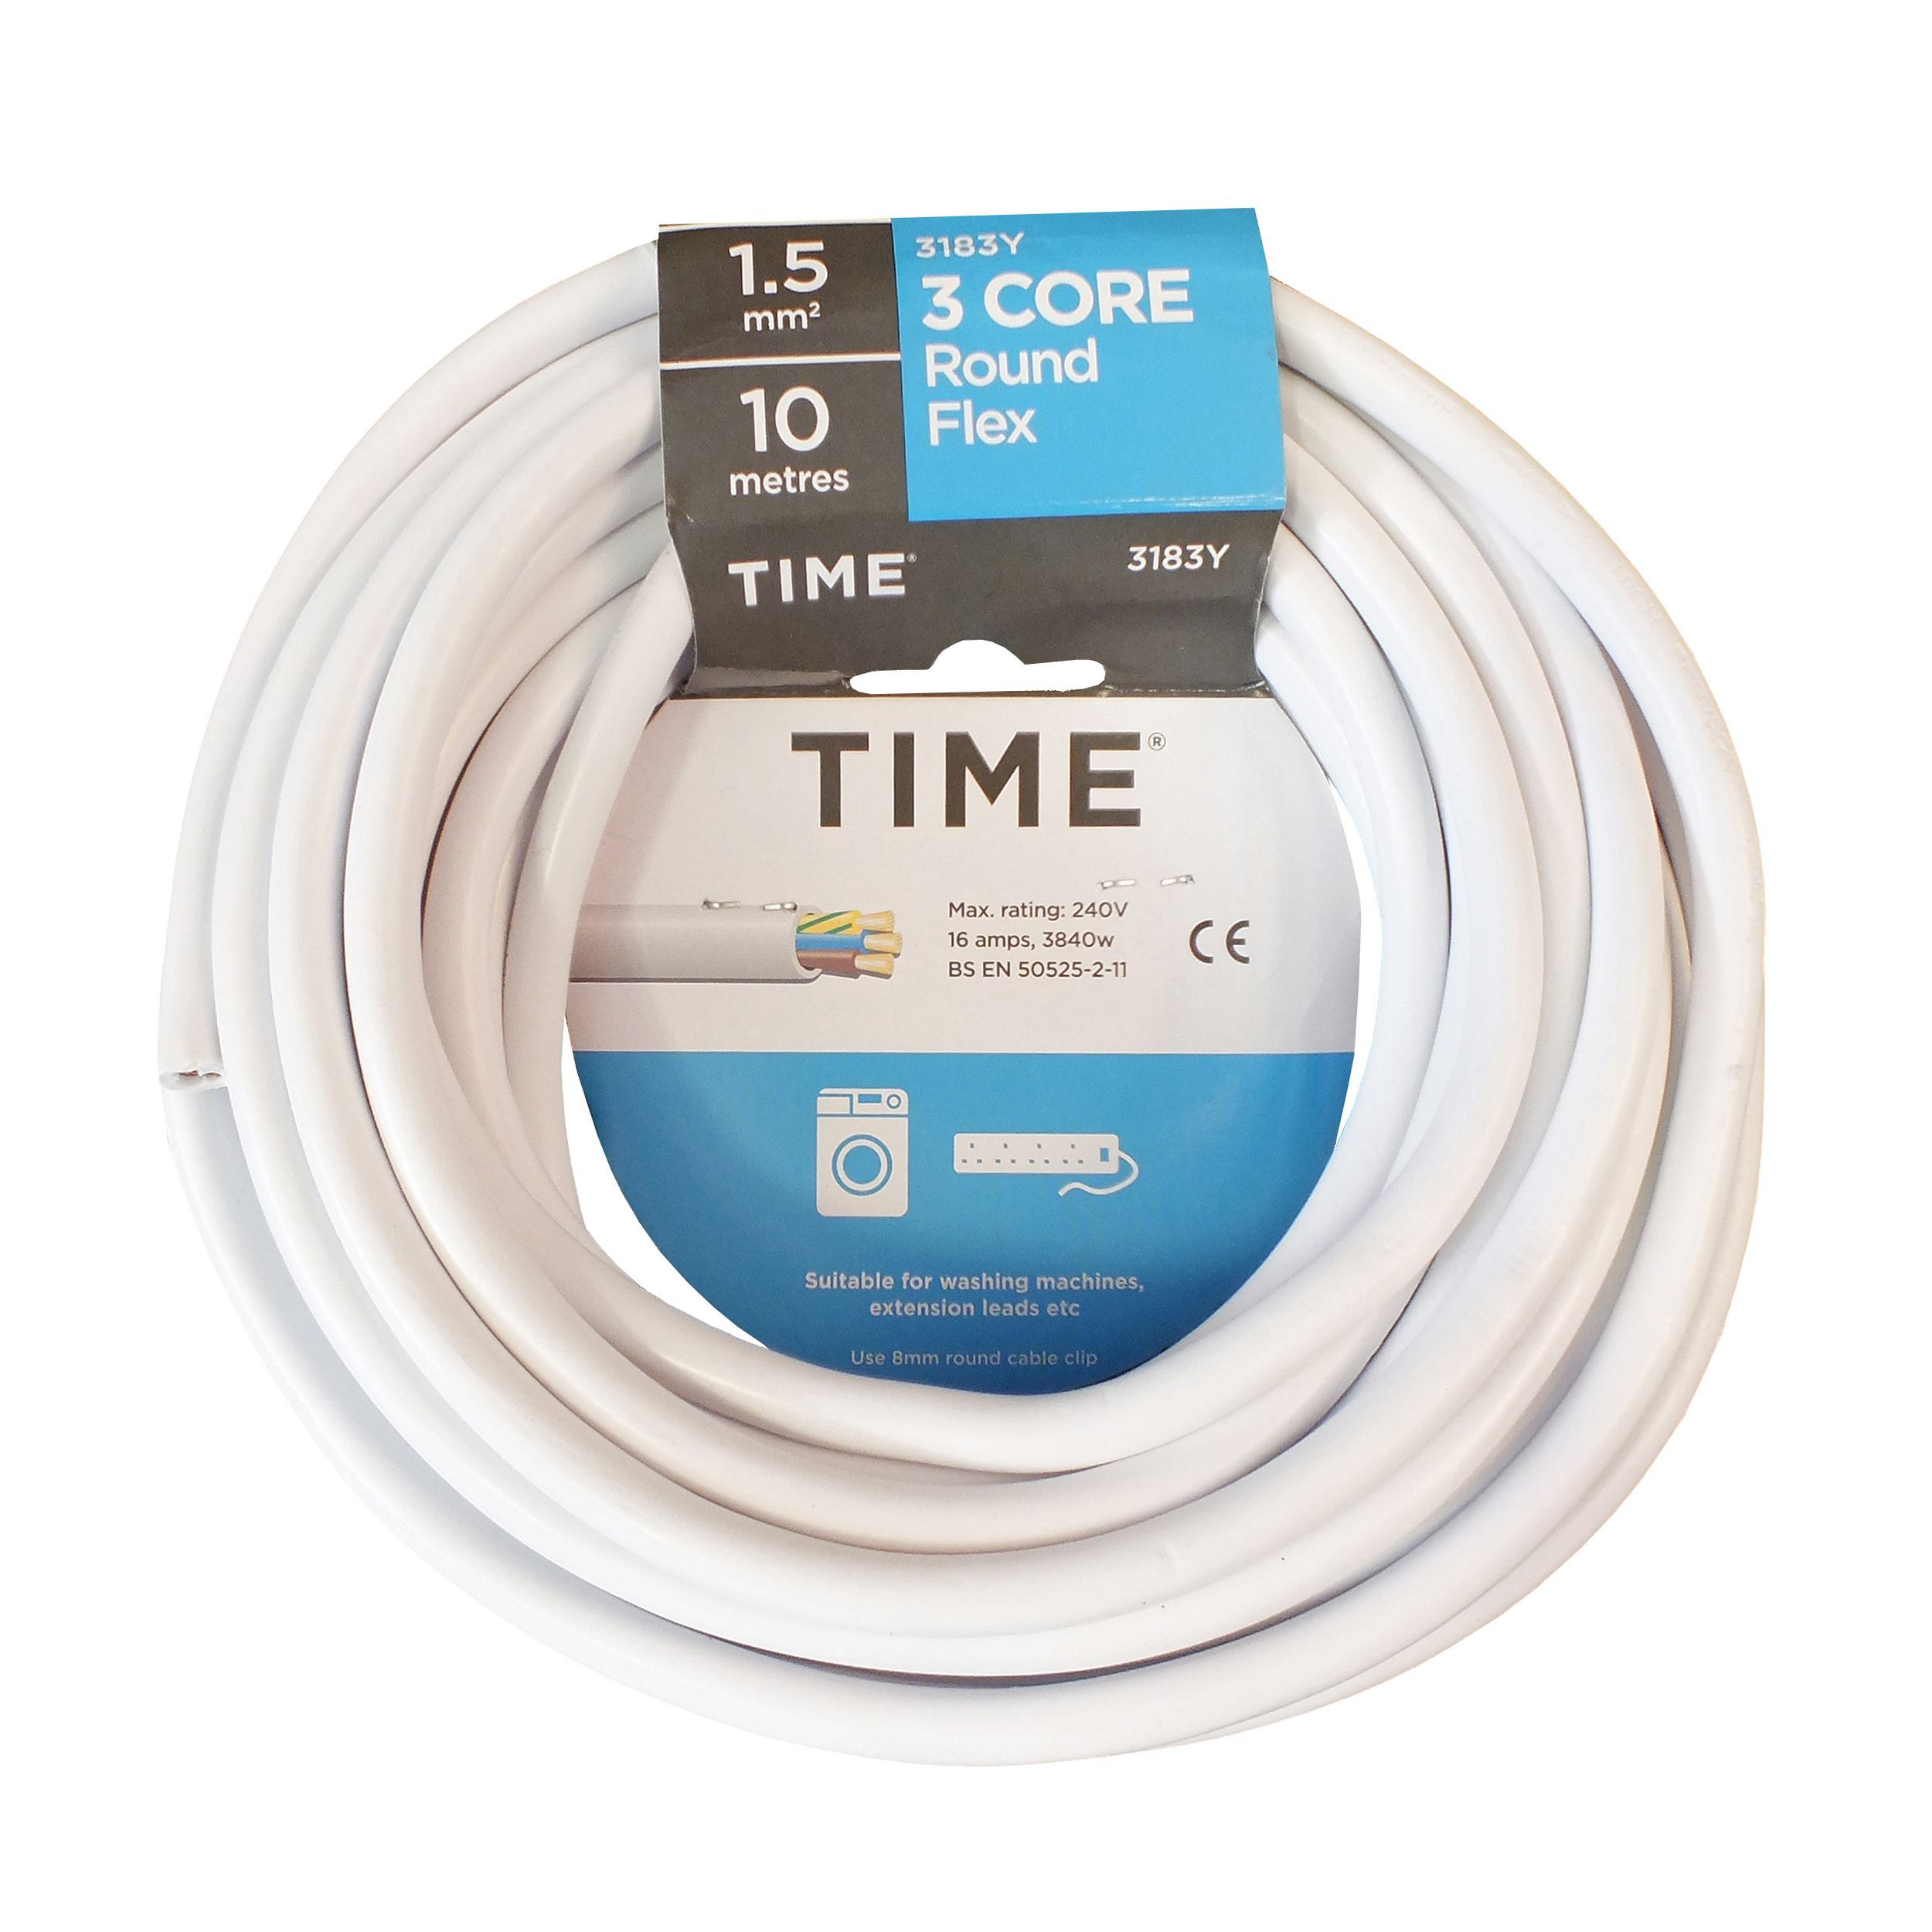 Time 3 core Round flexible cable 1.5mm² 3183Y White 10 m ...